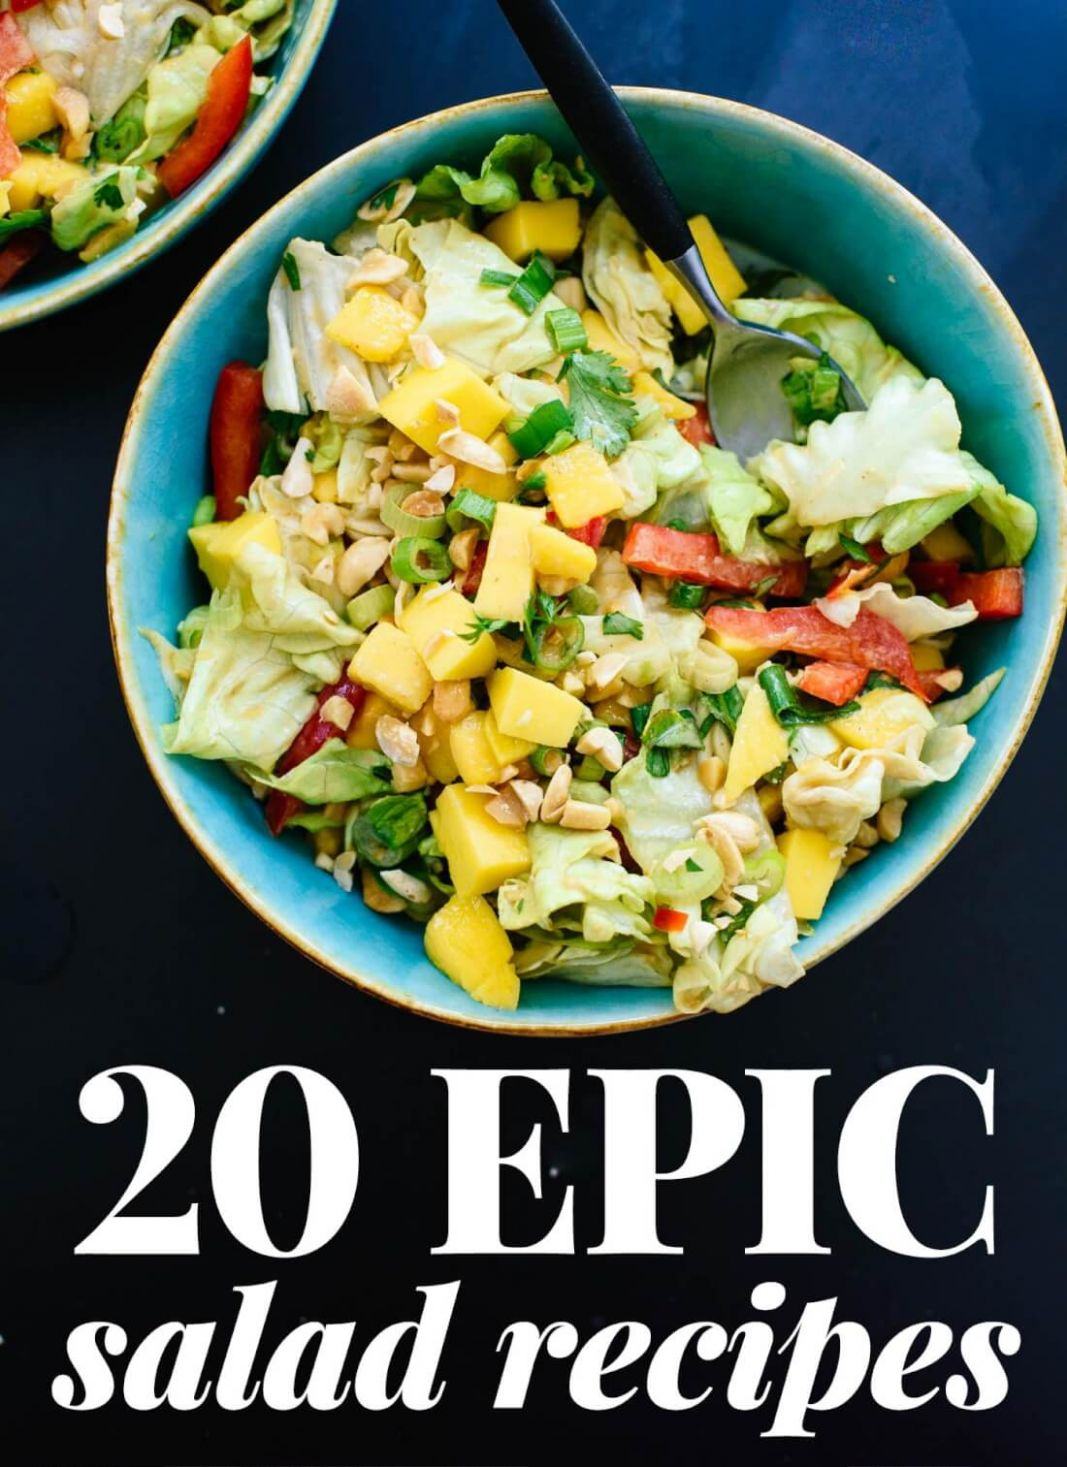 12 Epic Salad Recipes - Cookie and Kate - Salad Recipes For Dinner Party